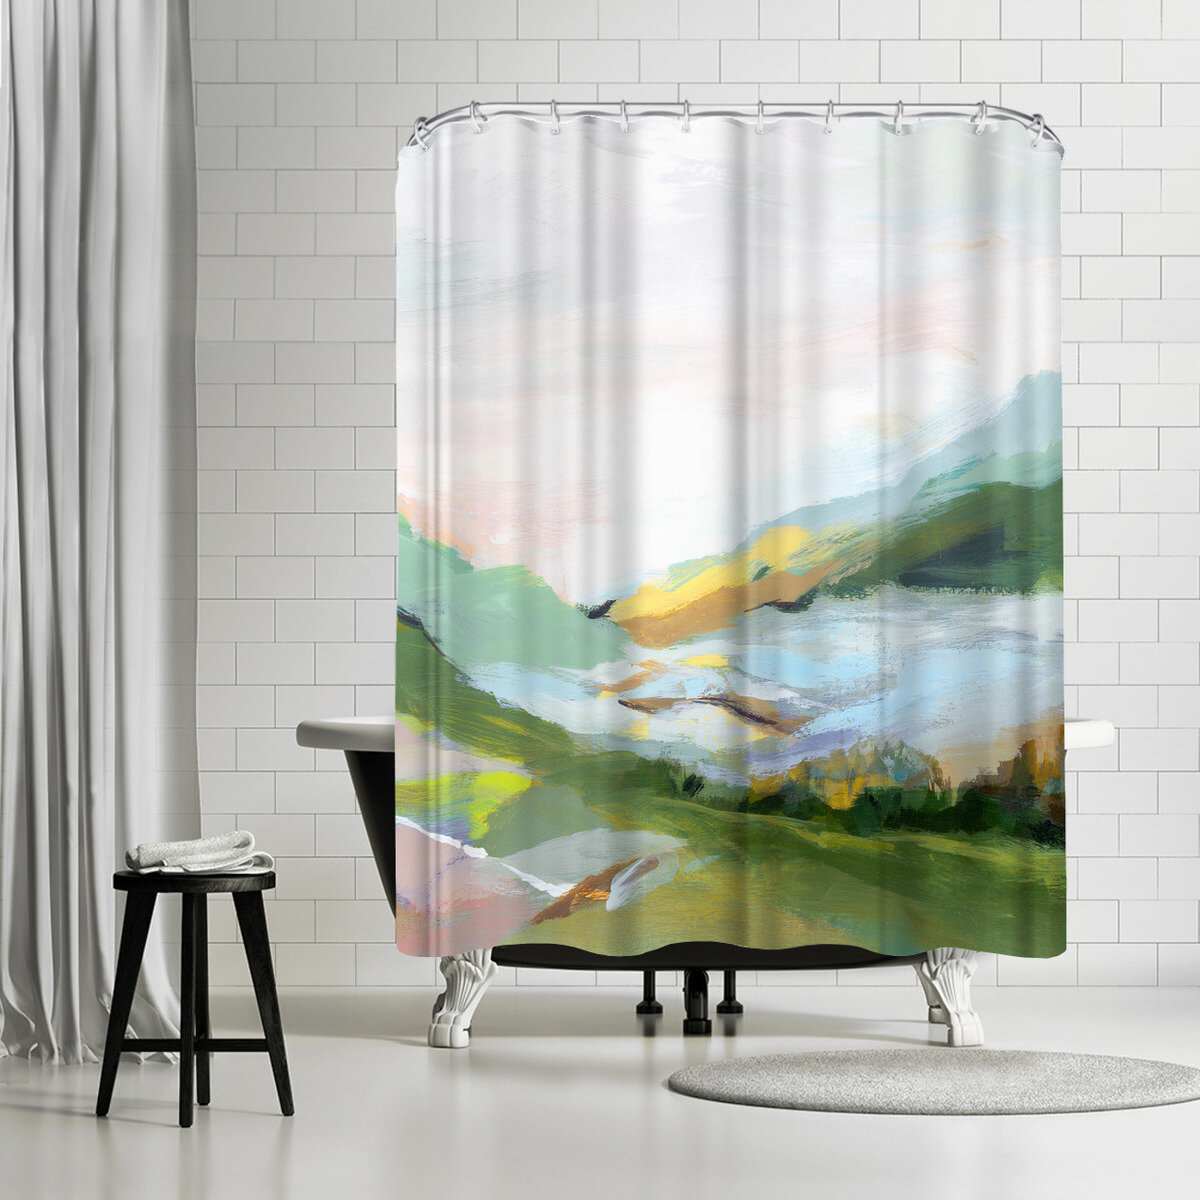 East Urban Home Pi Creative Art Highland Ii Single Shower Curtain Wayfair